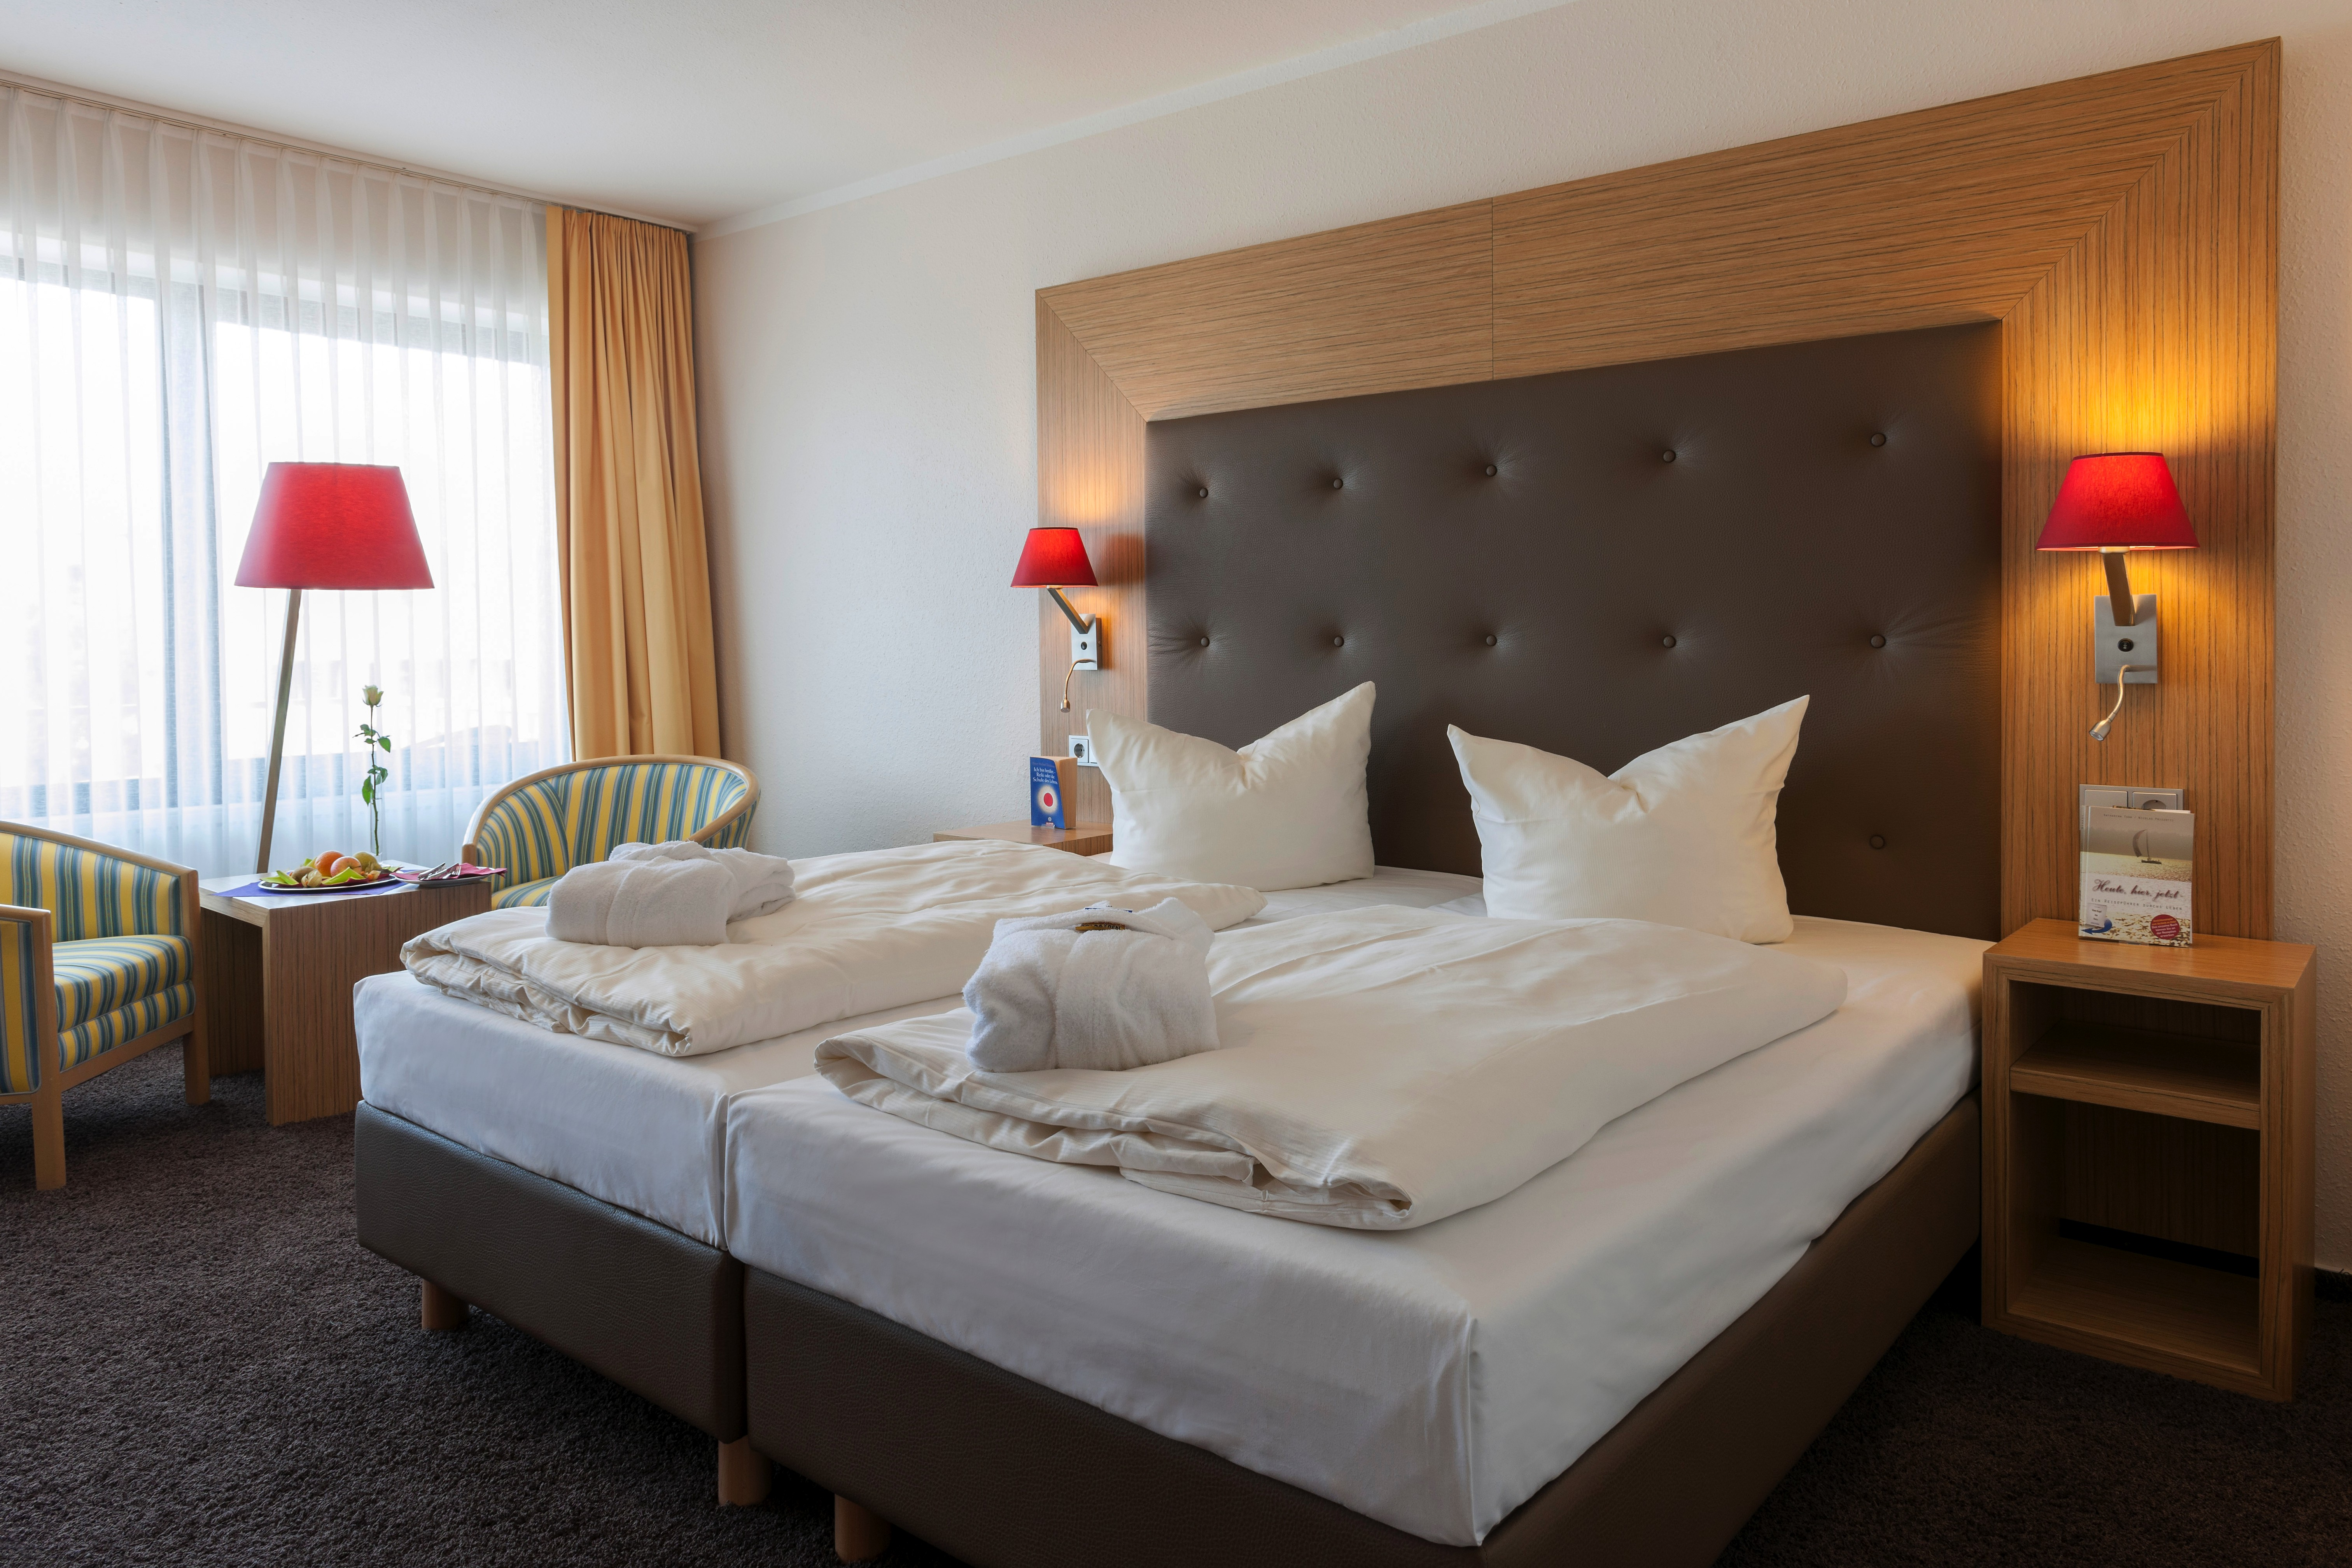 Pressematerial for Boutique hotel am strand